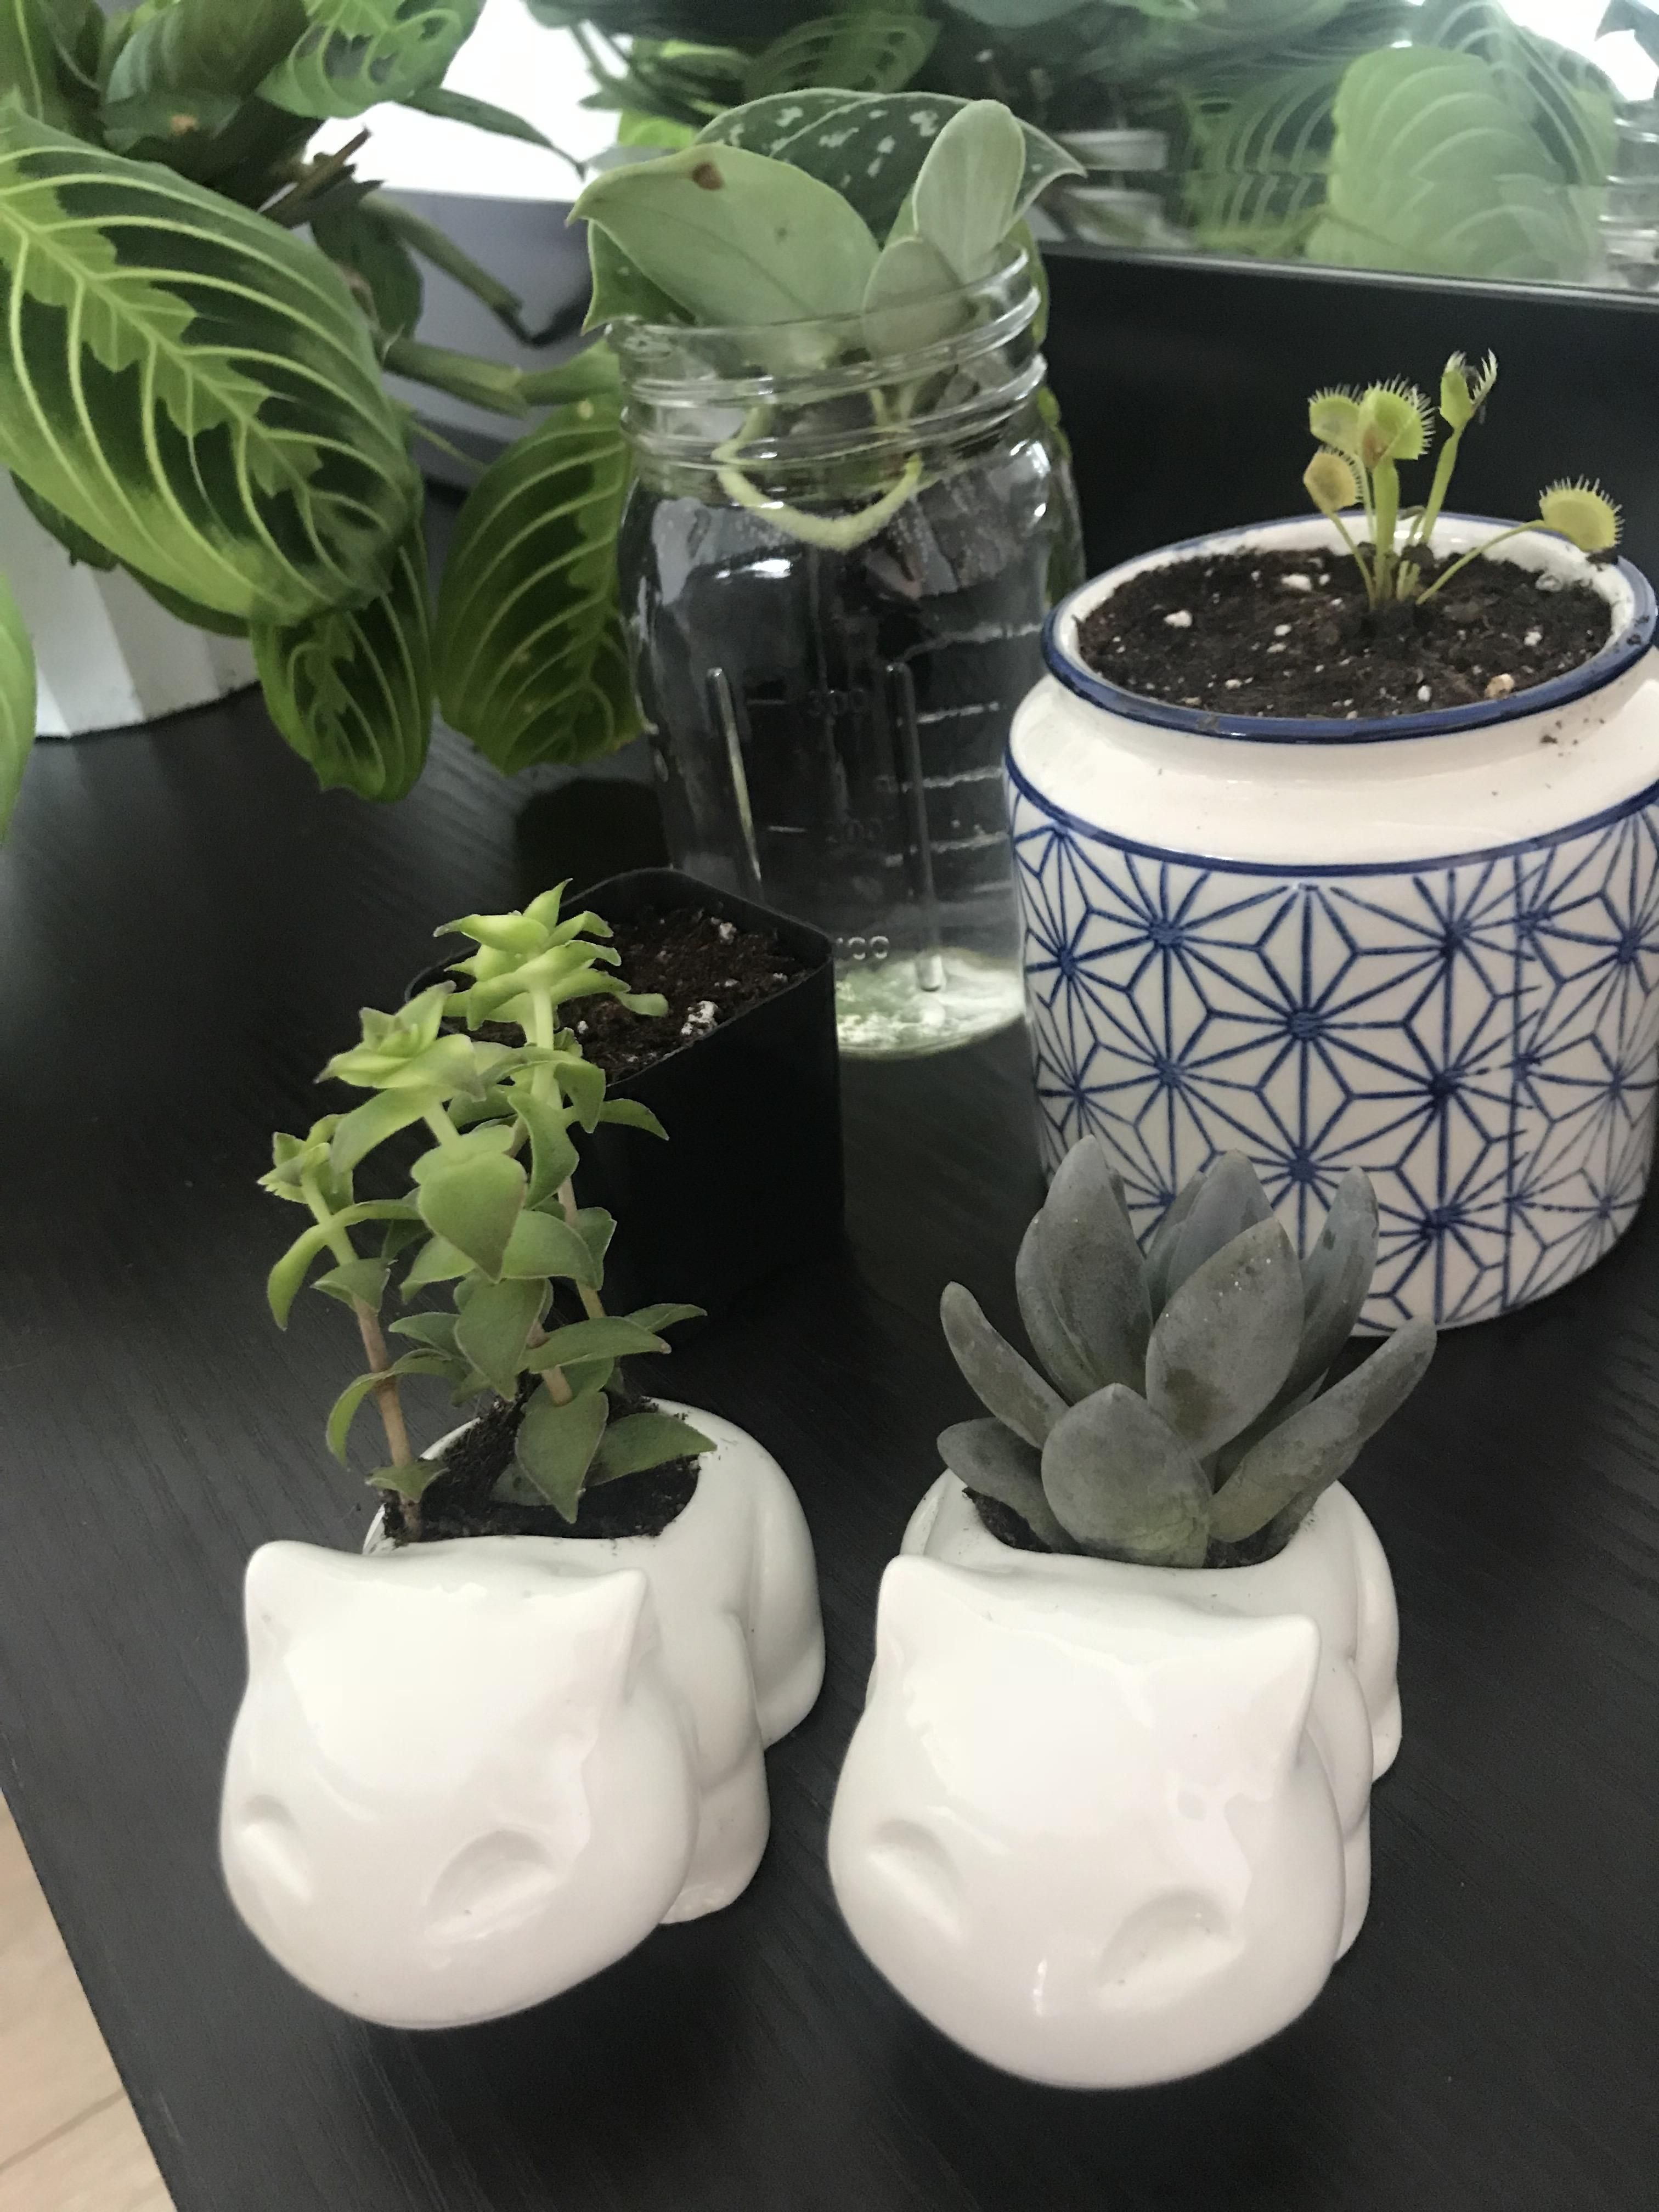 Got These Cute Tiny Planters To Add Some Flair To